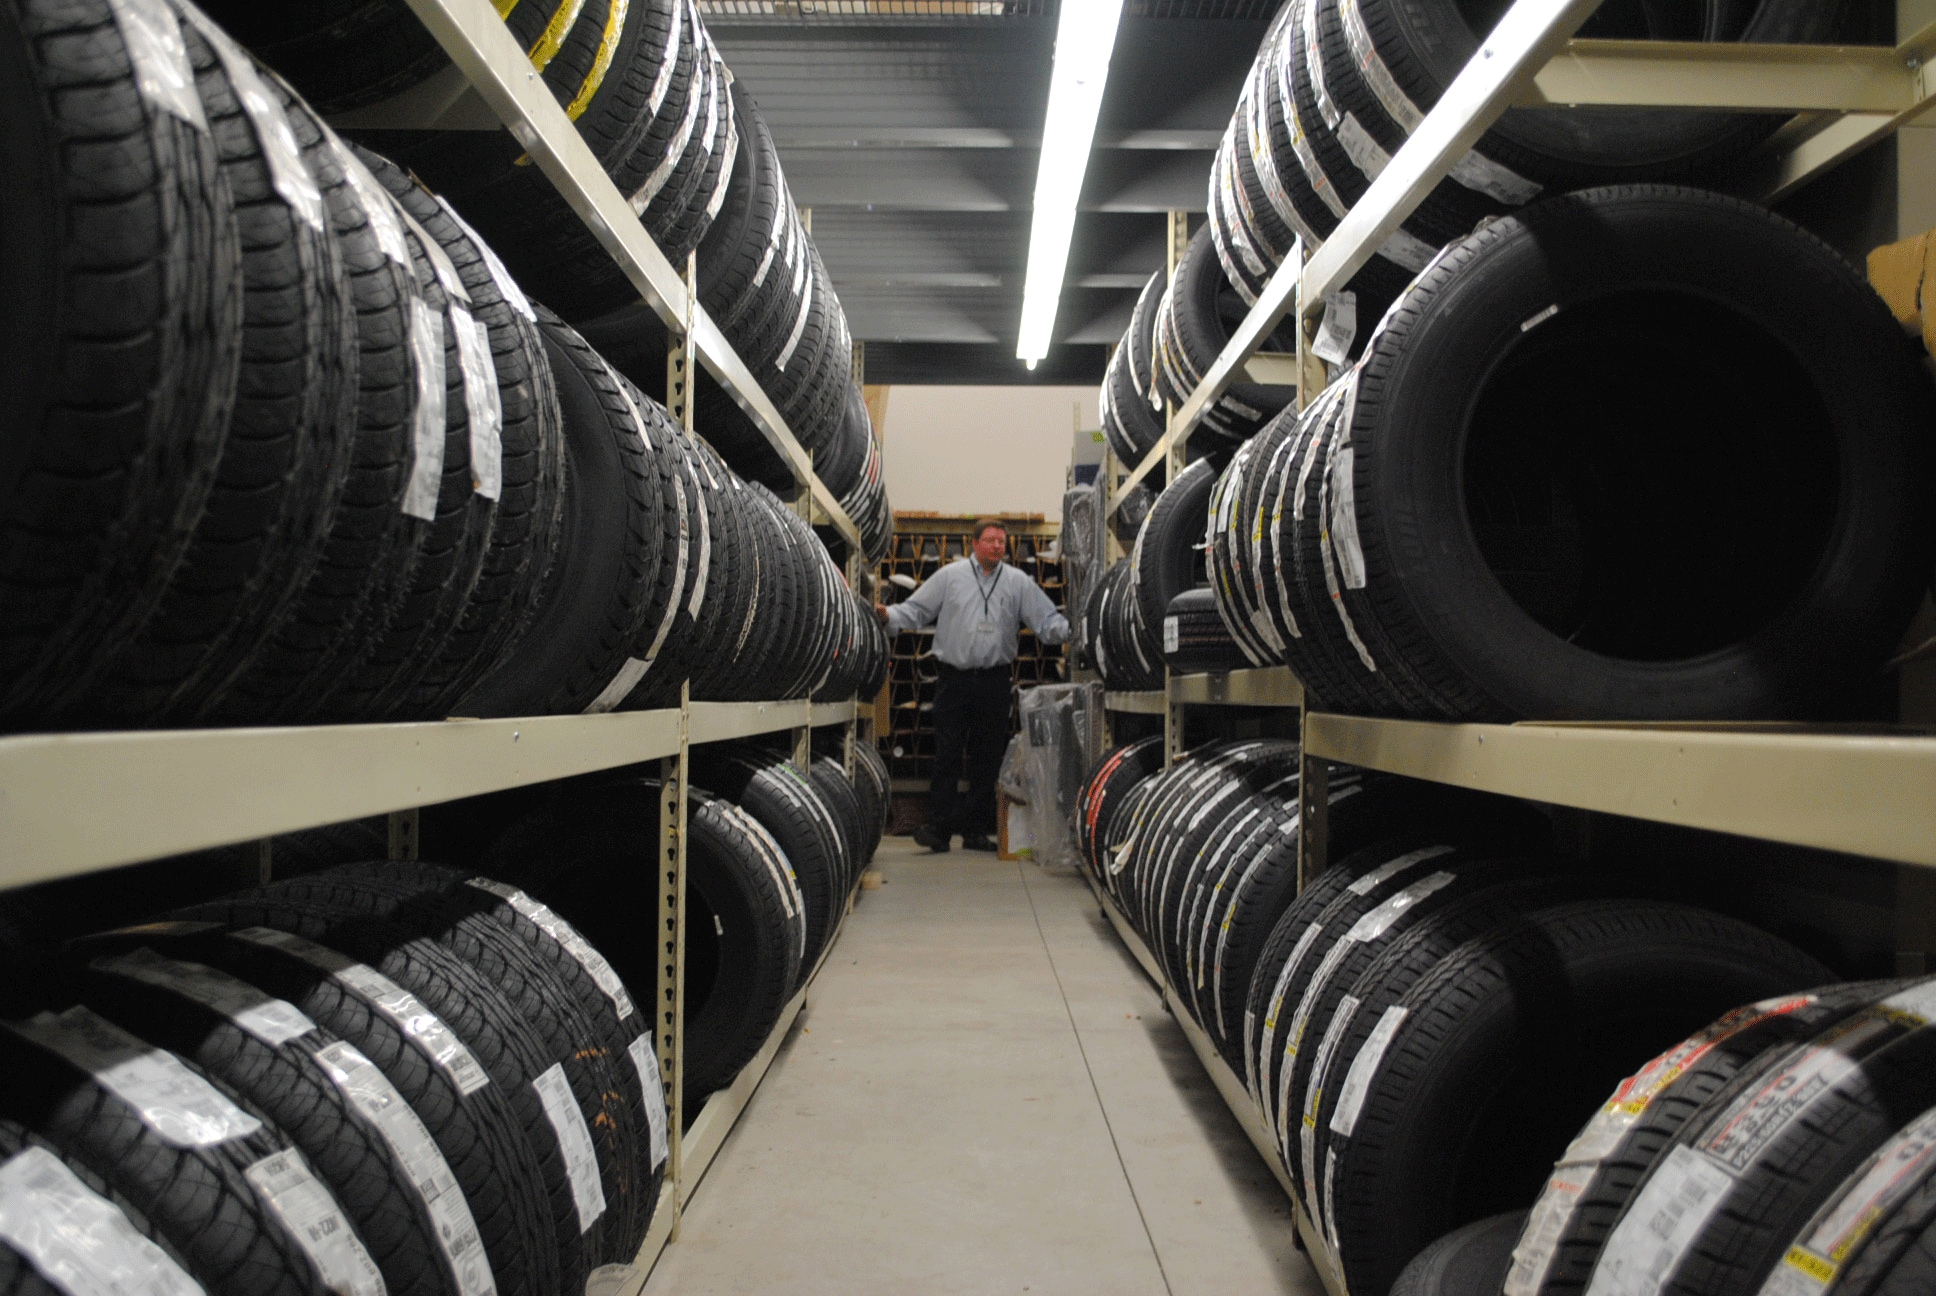 Our new larger parts warehouse gives us even more inventory of toyota parts for faster and more efficient repairs we can now stock hundreds of tires so